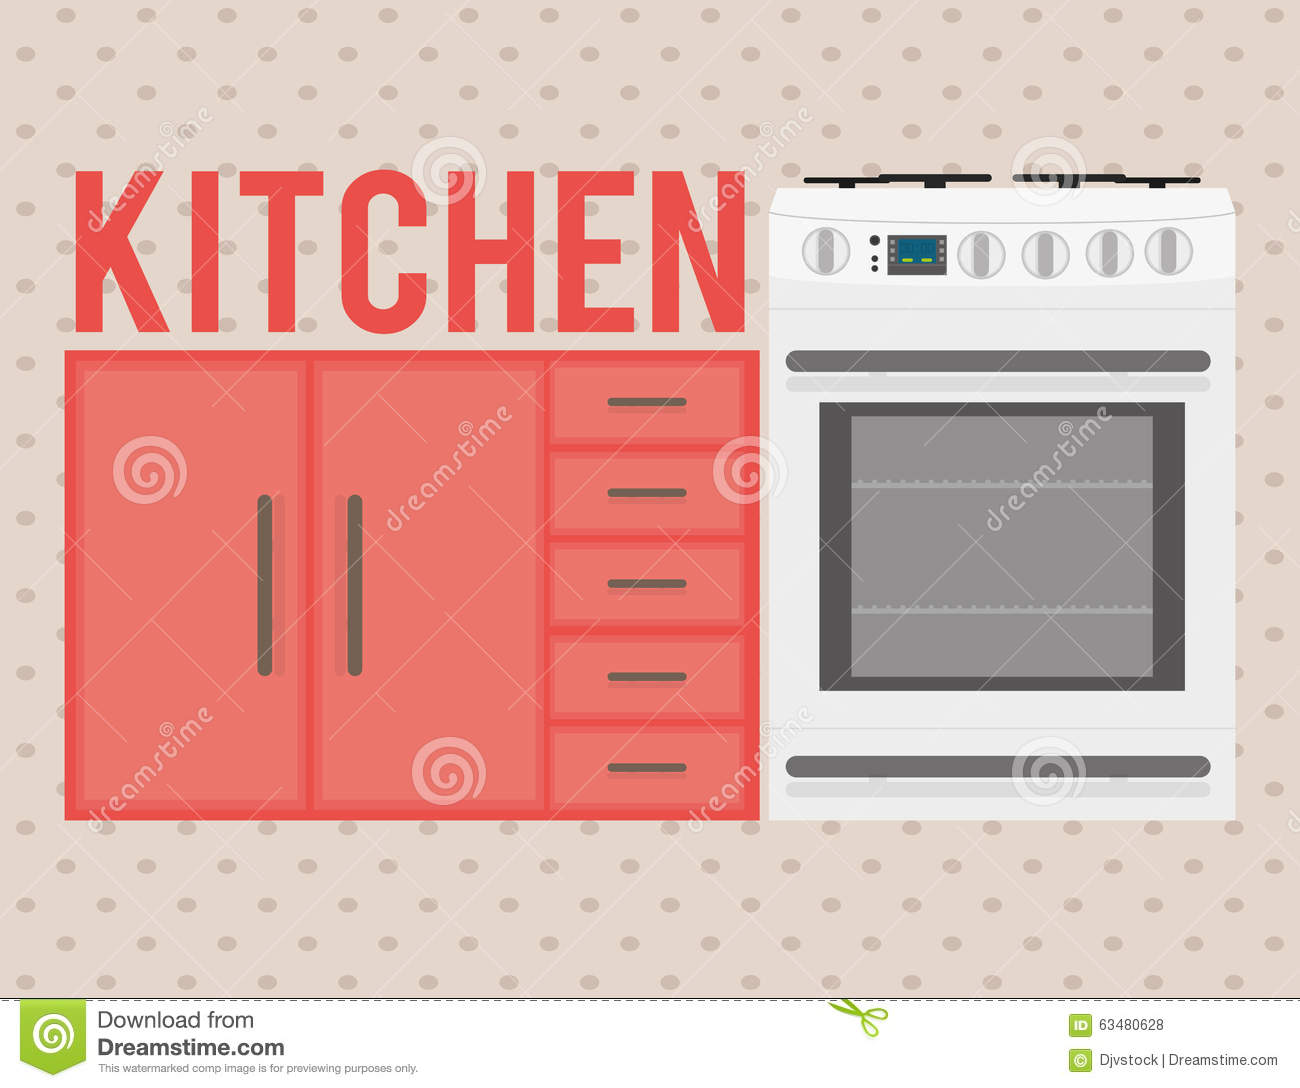 House appliances design stock vector image 63480628 for Household appliances design